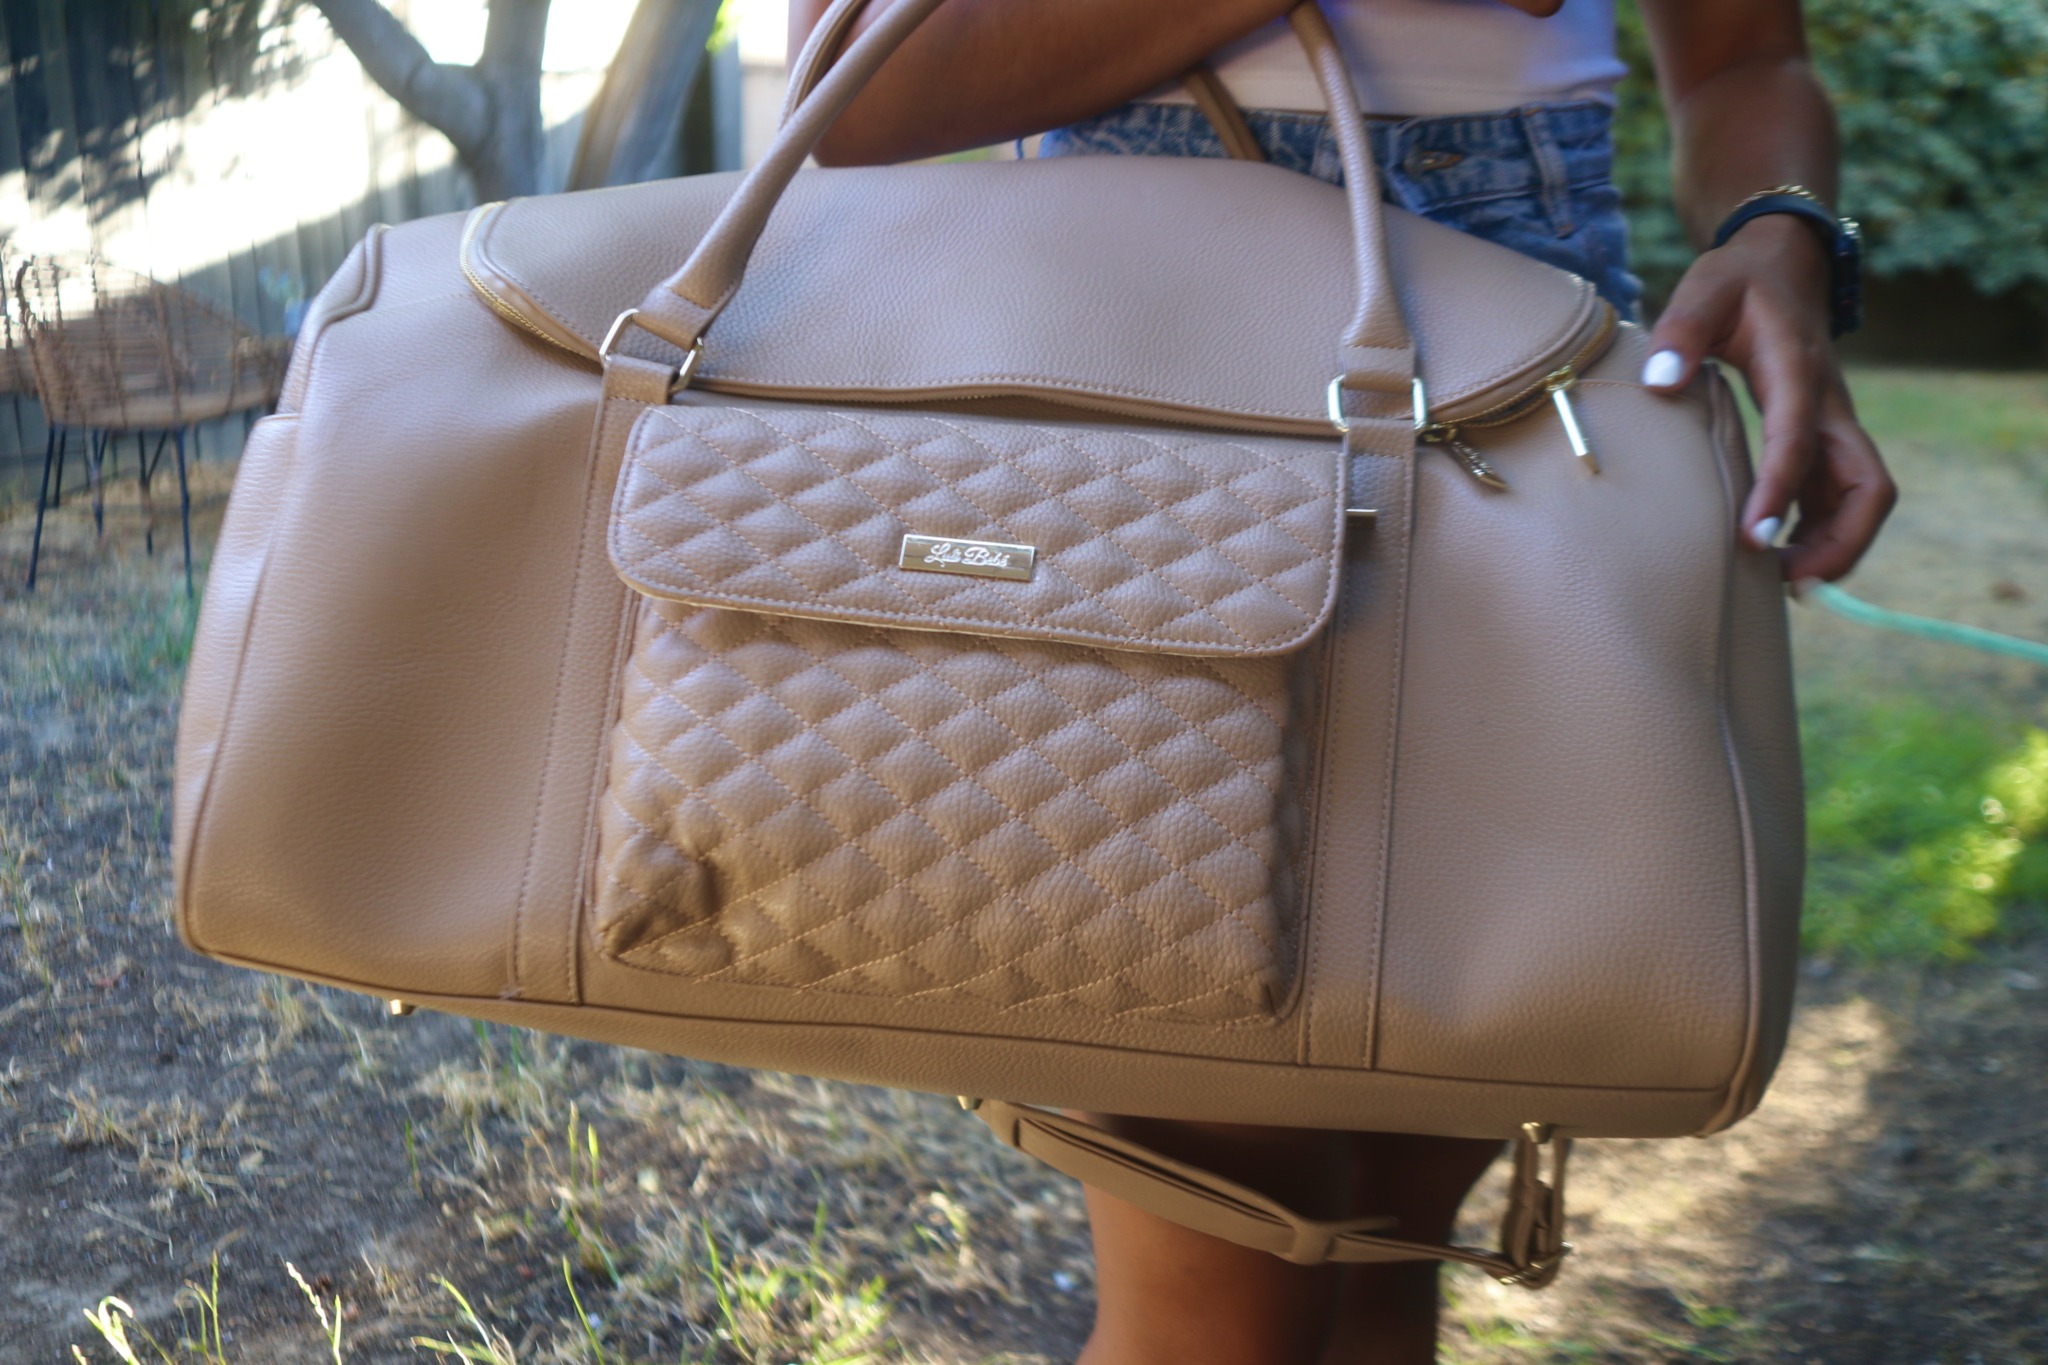 On the Go With Style – Travel bag